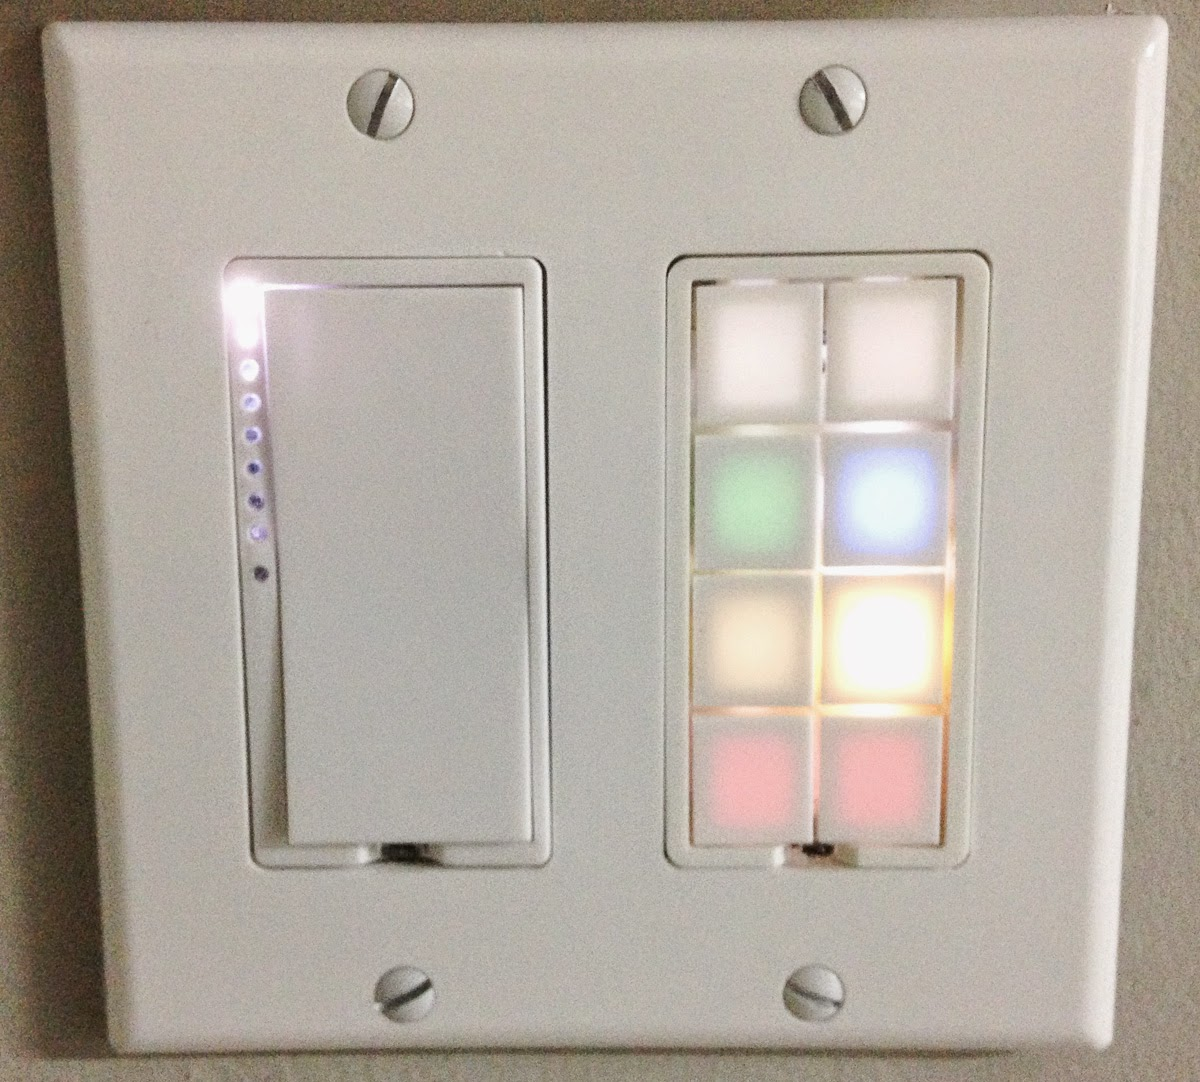 Glen's Home Automation: Converting Insteon 6 Button Keypads